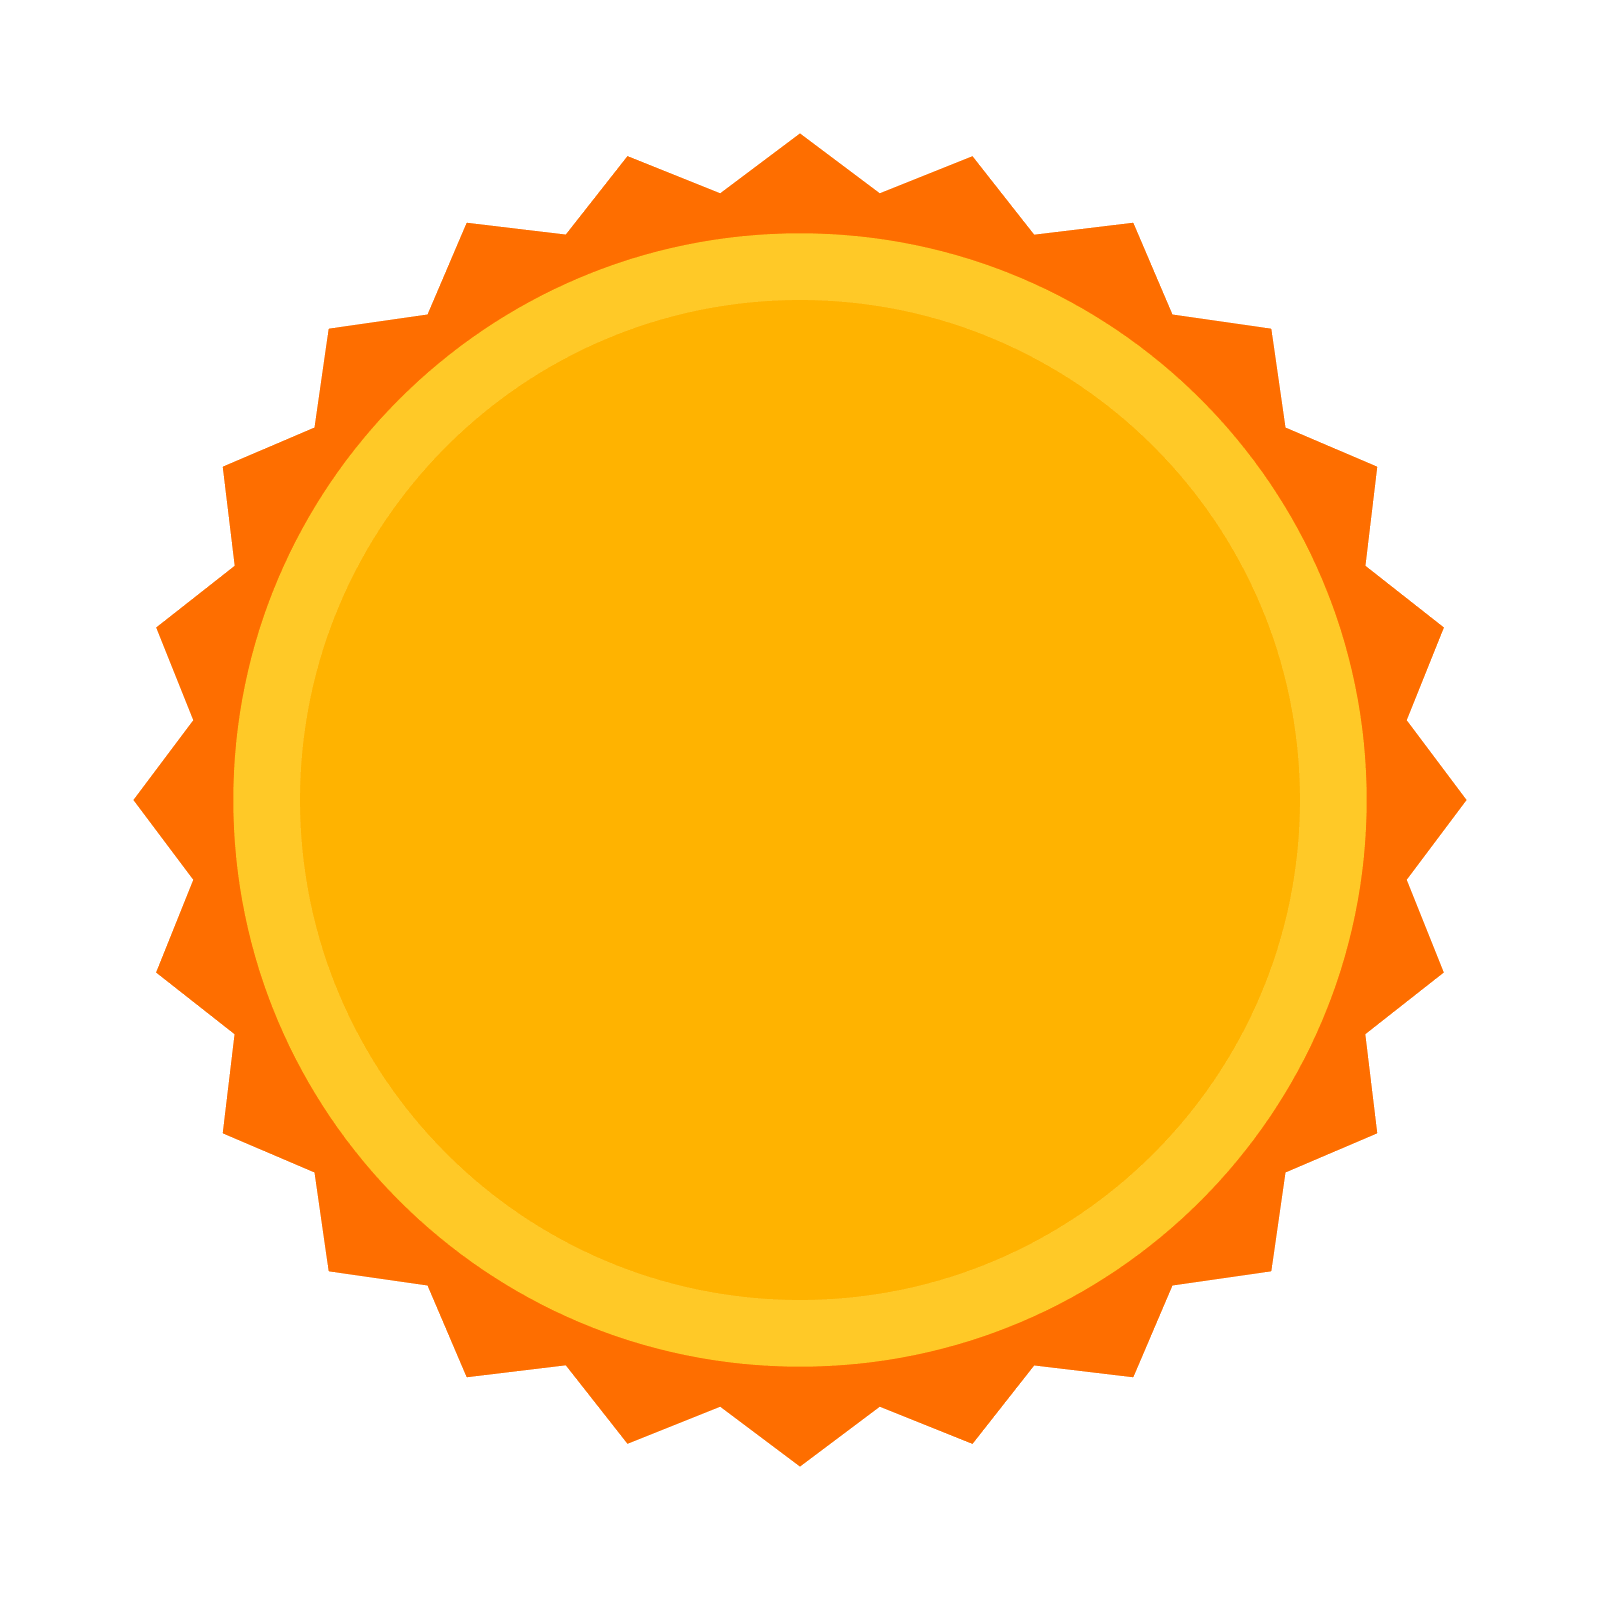 jpg transparent library Vector sunshine. Sun star icon free